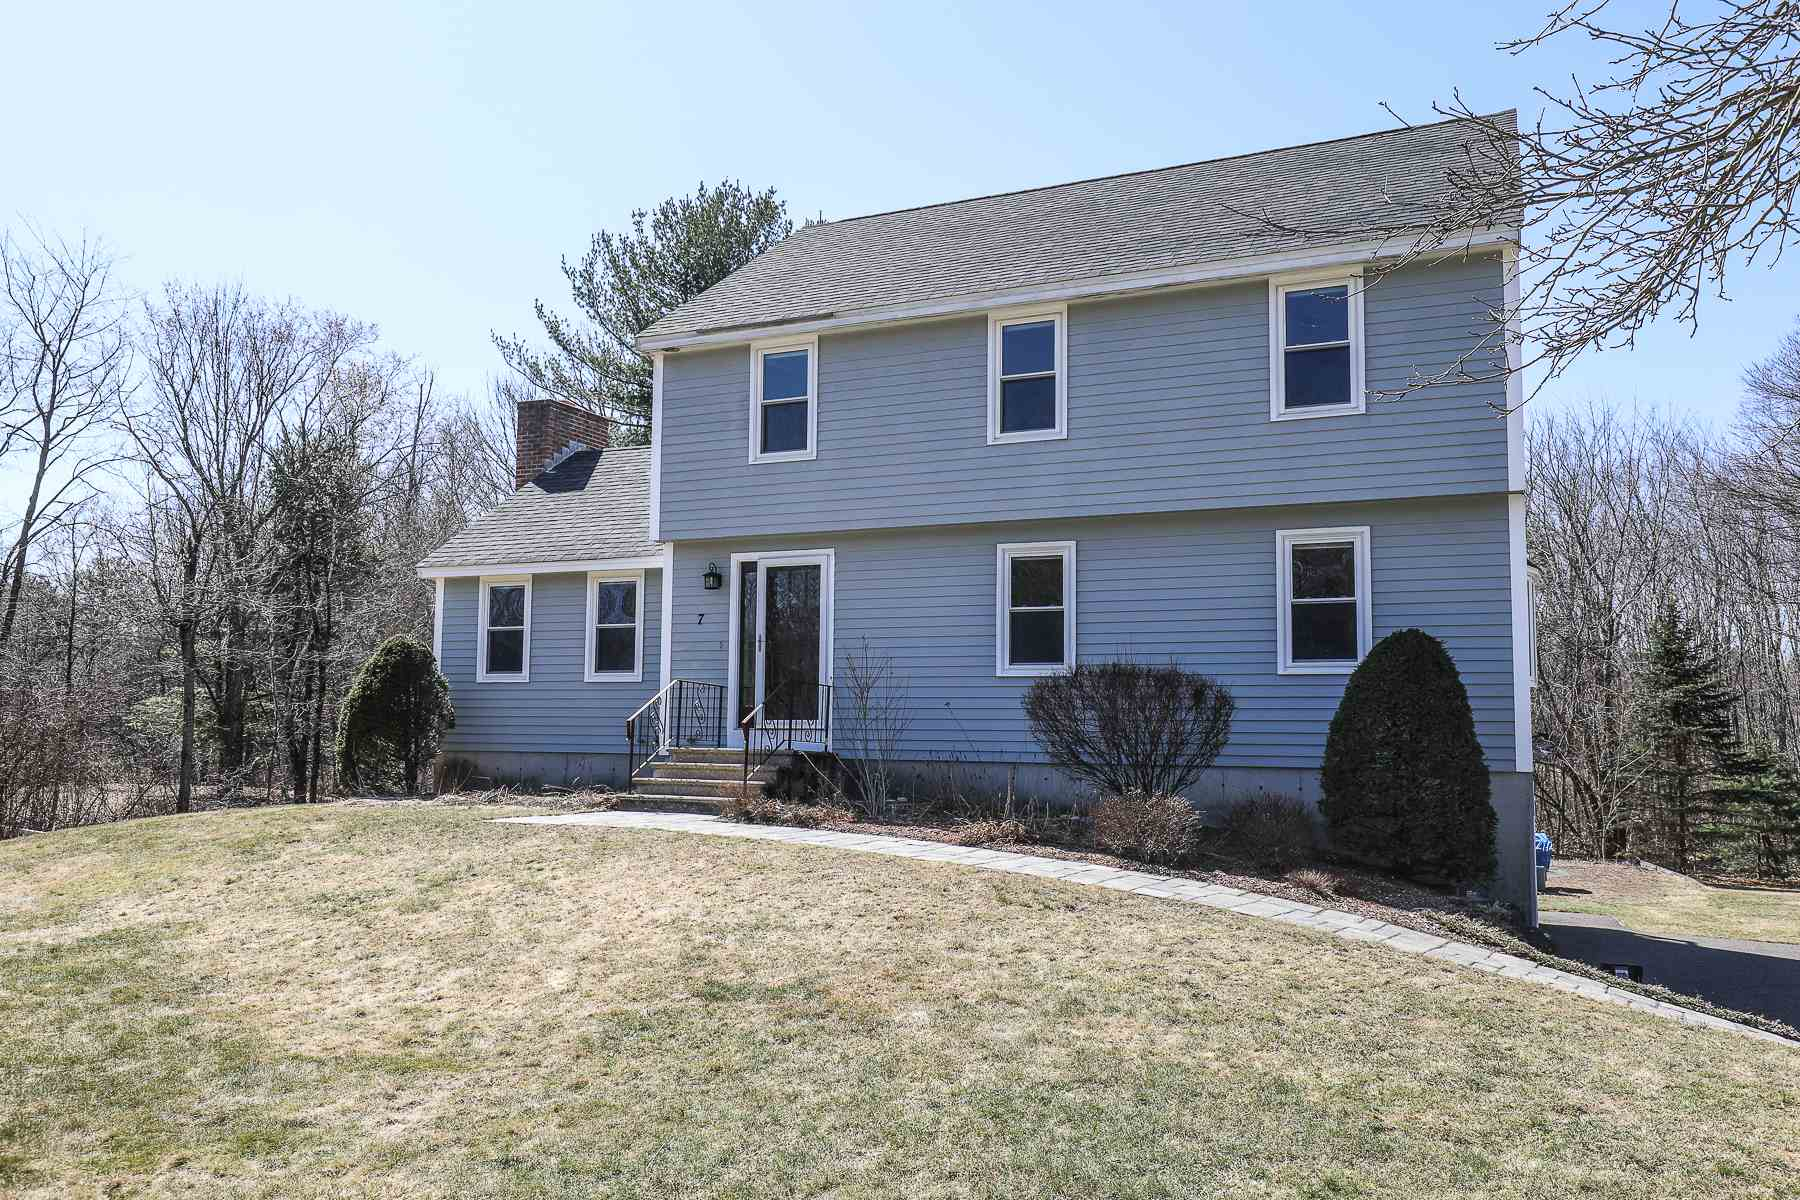 Photo of 7 Apple Blossom Drive Londonderry NH 03053